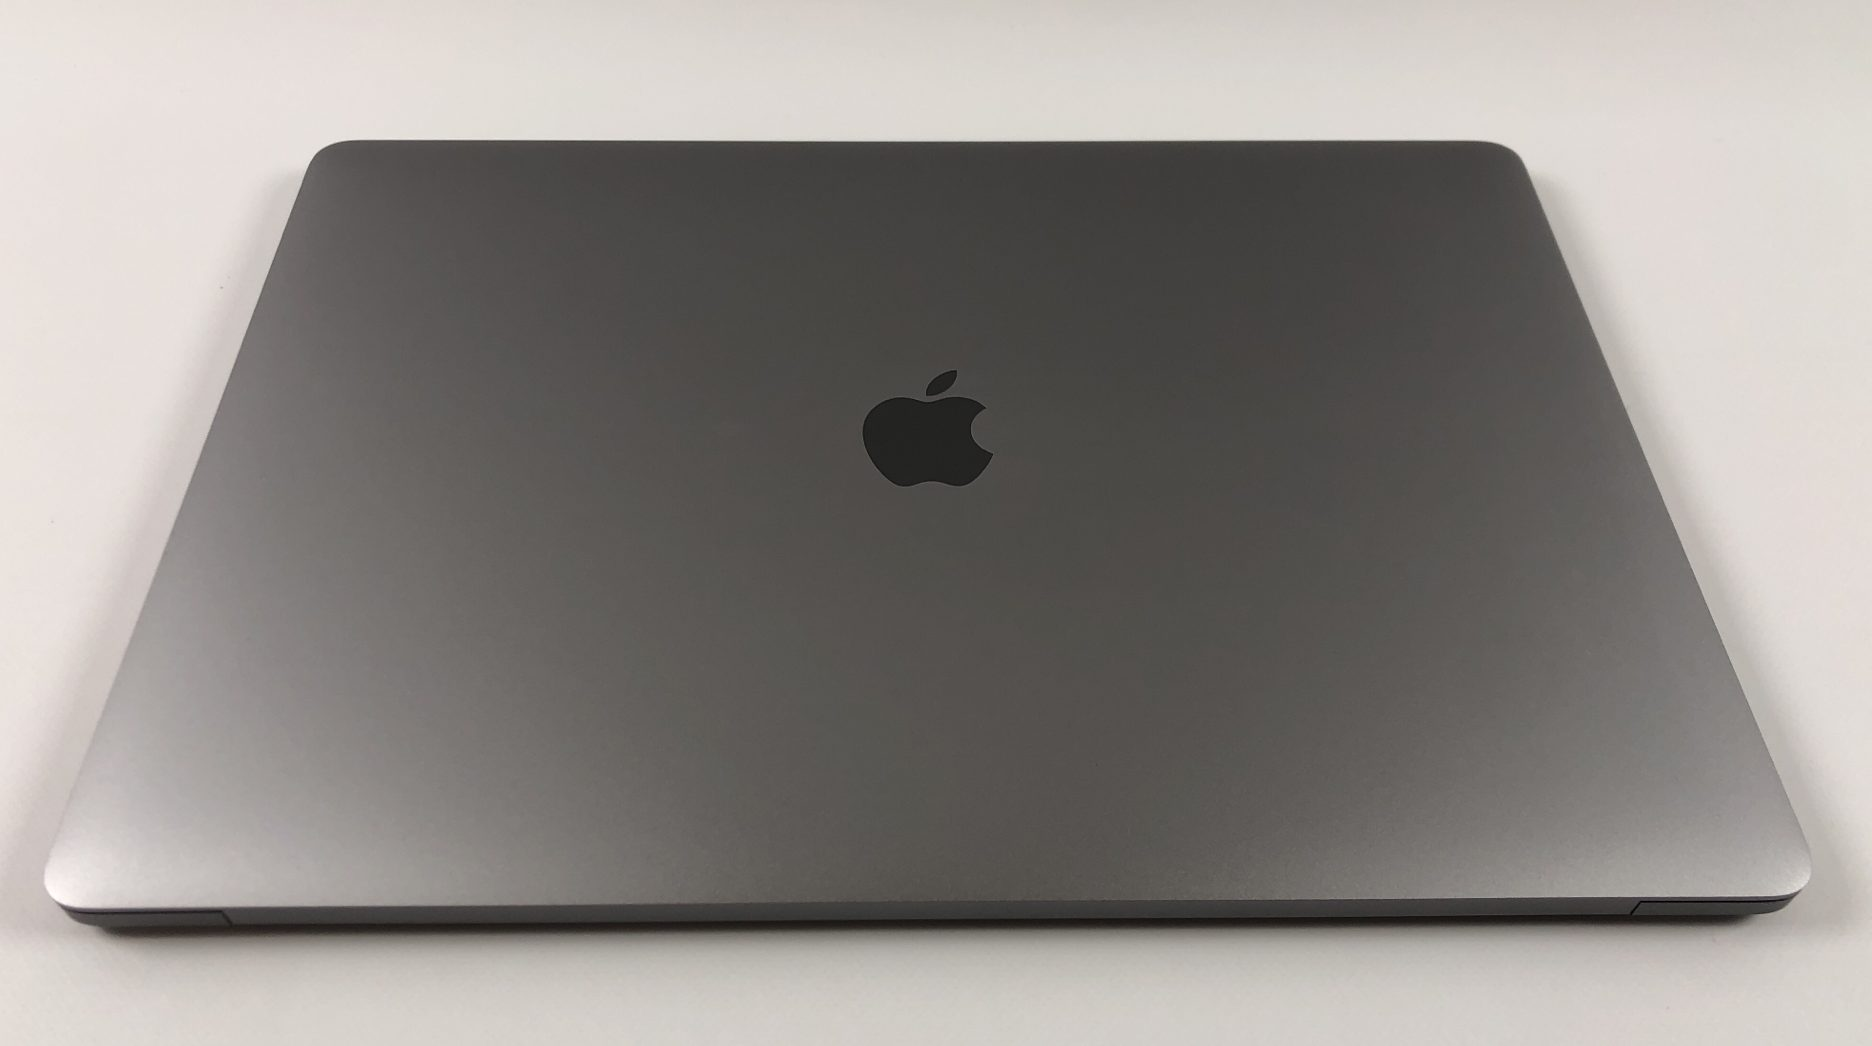 "MacBook Pro 15"" Touch Bar Mid 2017 (Intel Quad-Core i7 2.8 GHz 16 GB RAM 256 GB SSD), Space Gray, Intel Quad-Core i7 2.8 GHz, 16 GB RAM, 256 GB SSD, Kuva 2"